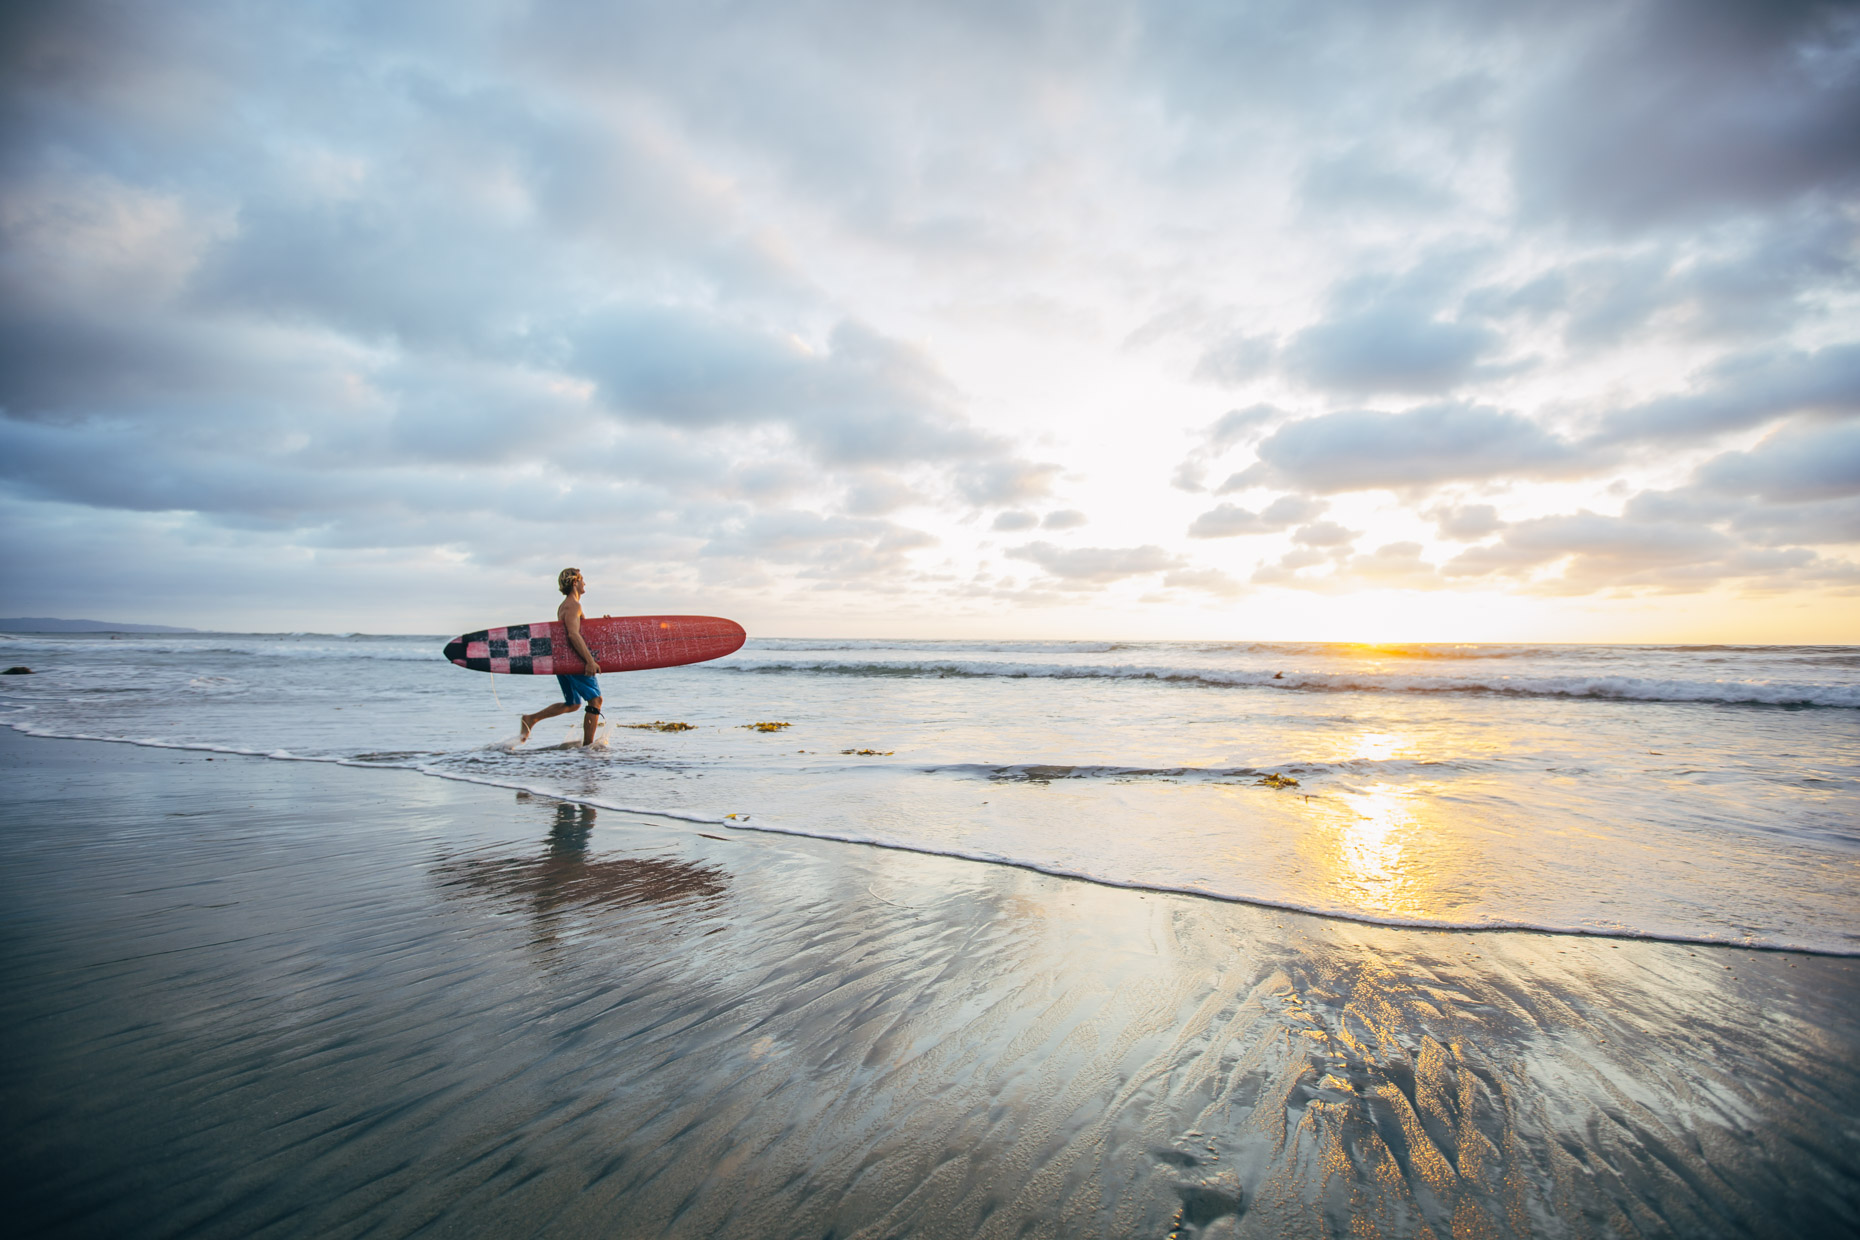 Man with surfboard running into ocean on beach at sunset